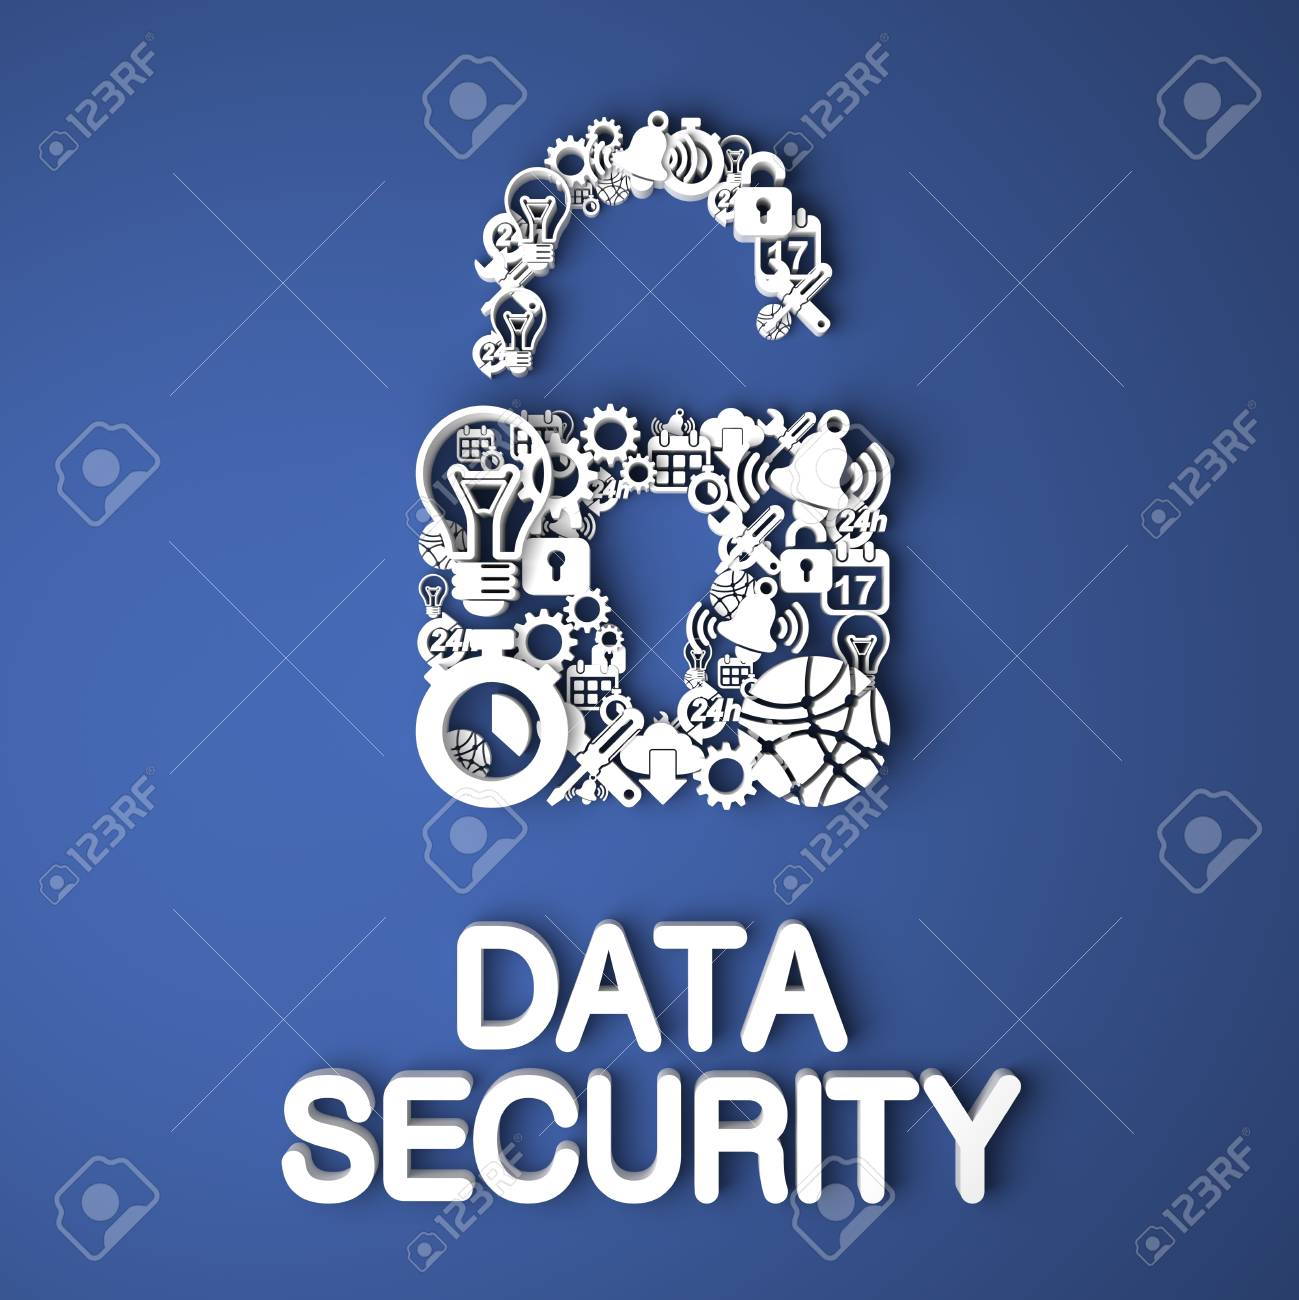 Data Security Card Handmade from Paper Characters on Blue Background. 3D Render. Business Concept. Stock Photo - 21362108